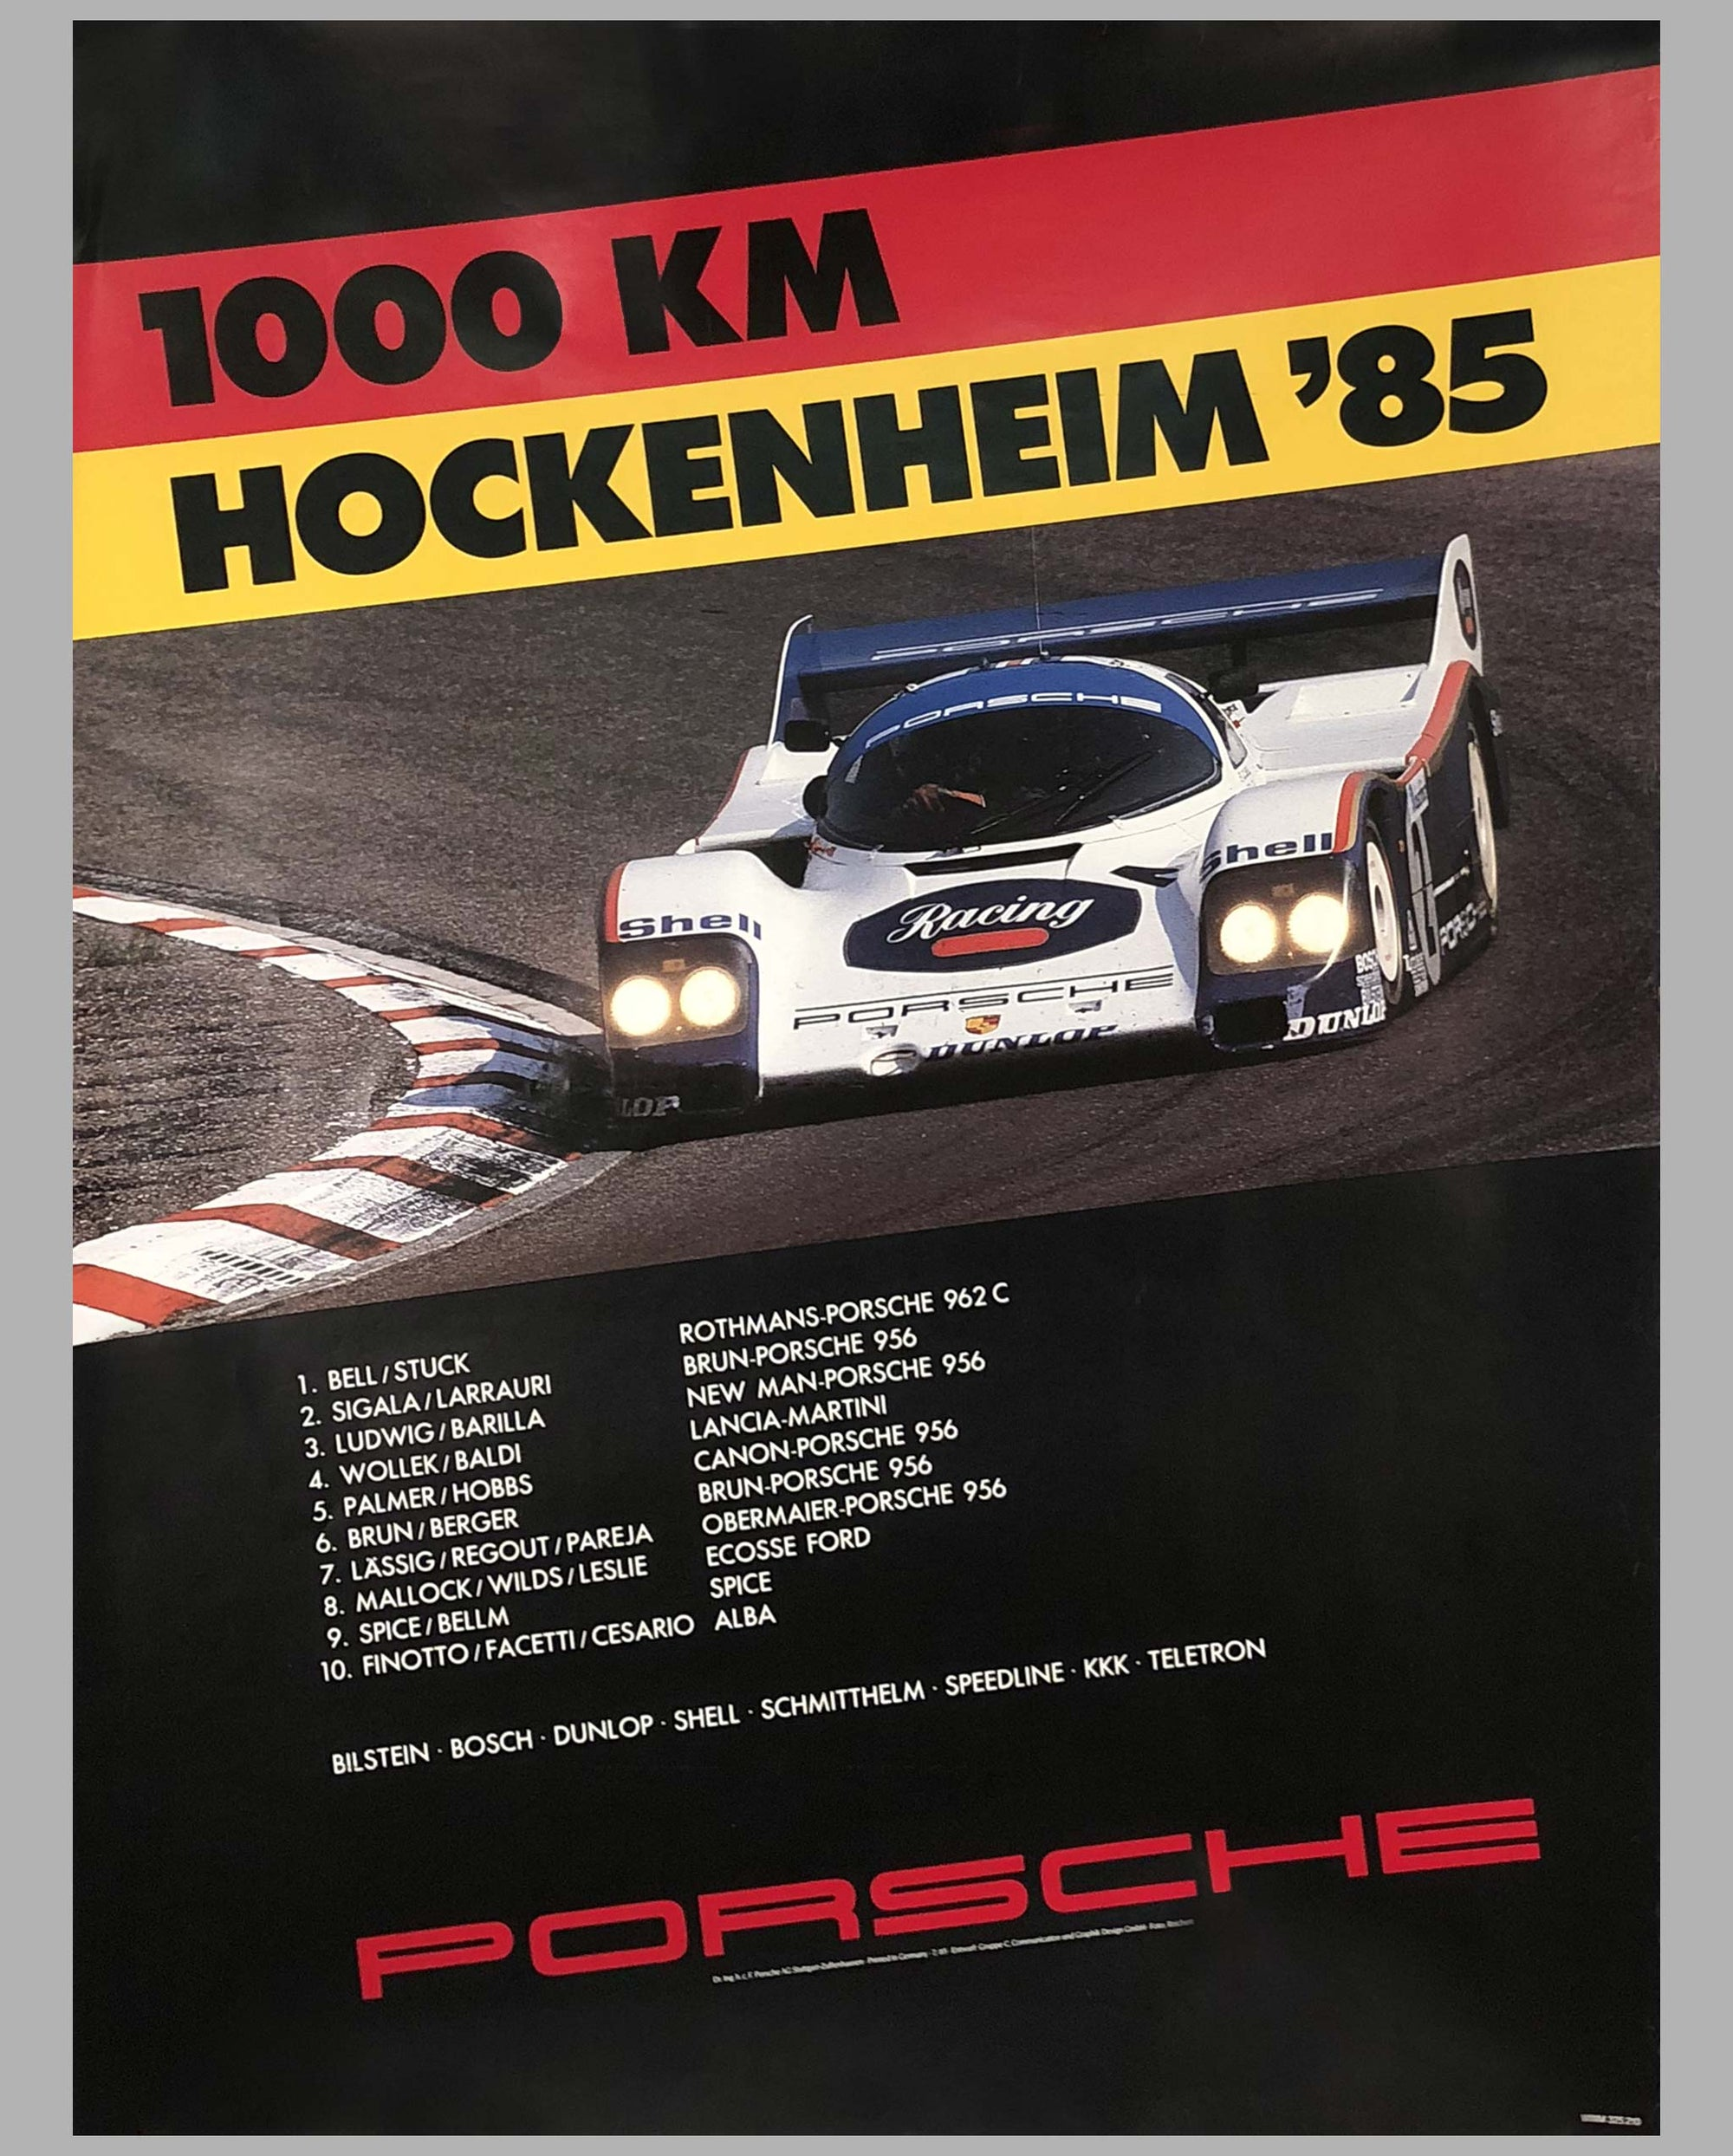 Porsche Factory Poster 1000 Km of Hockenheim 1985